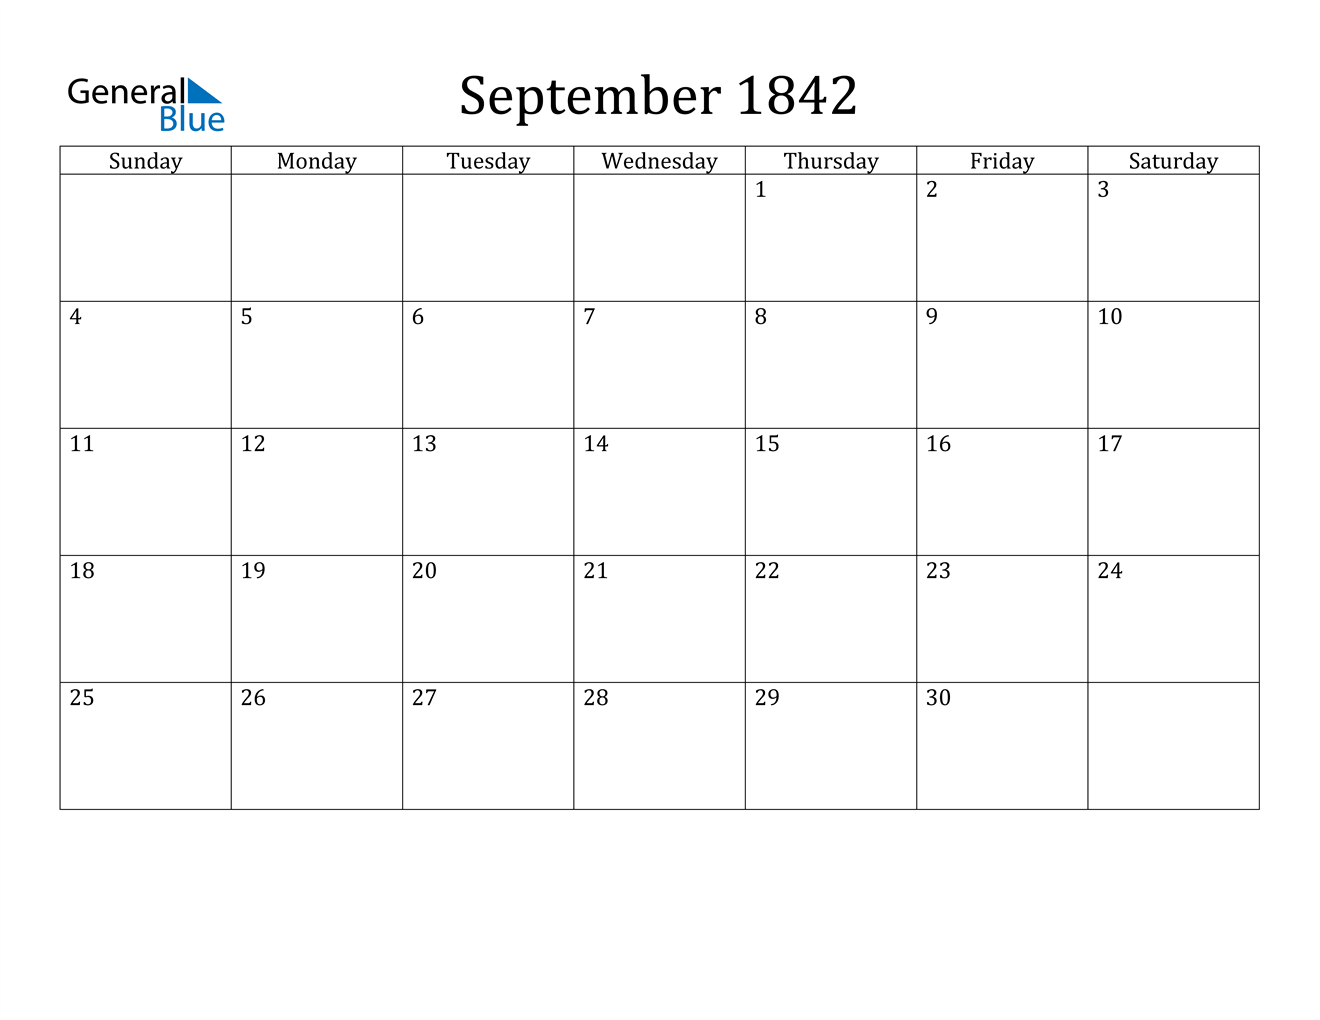 Image of September 1842 Calendar